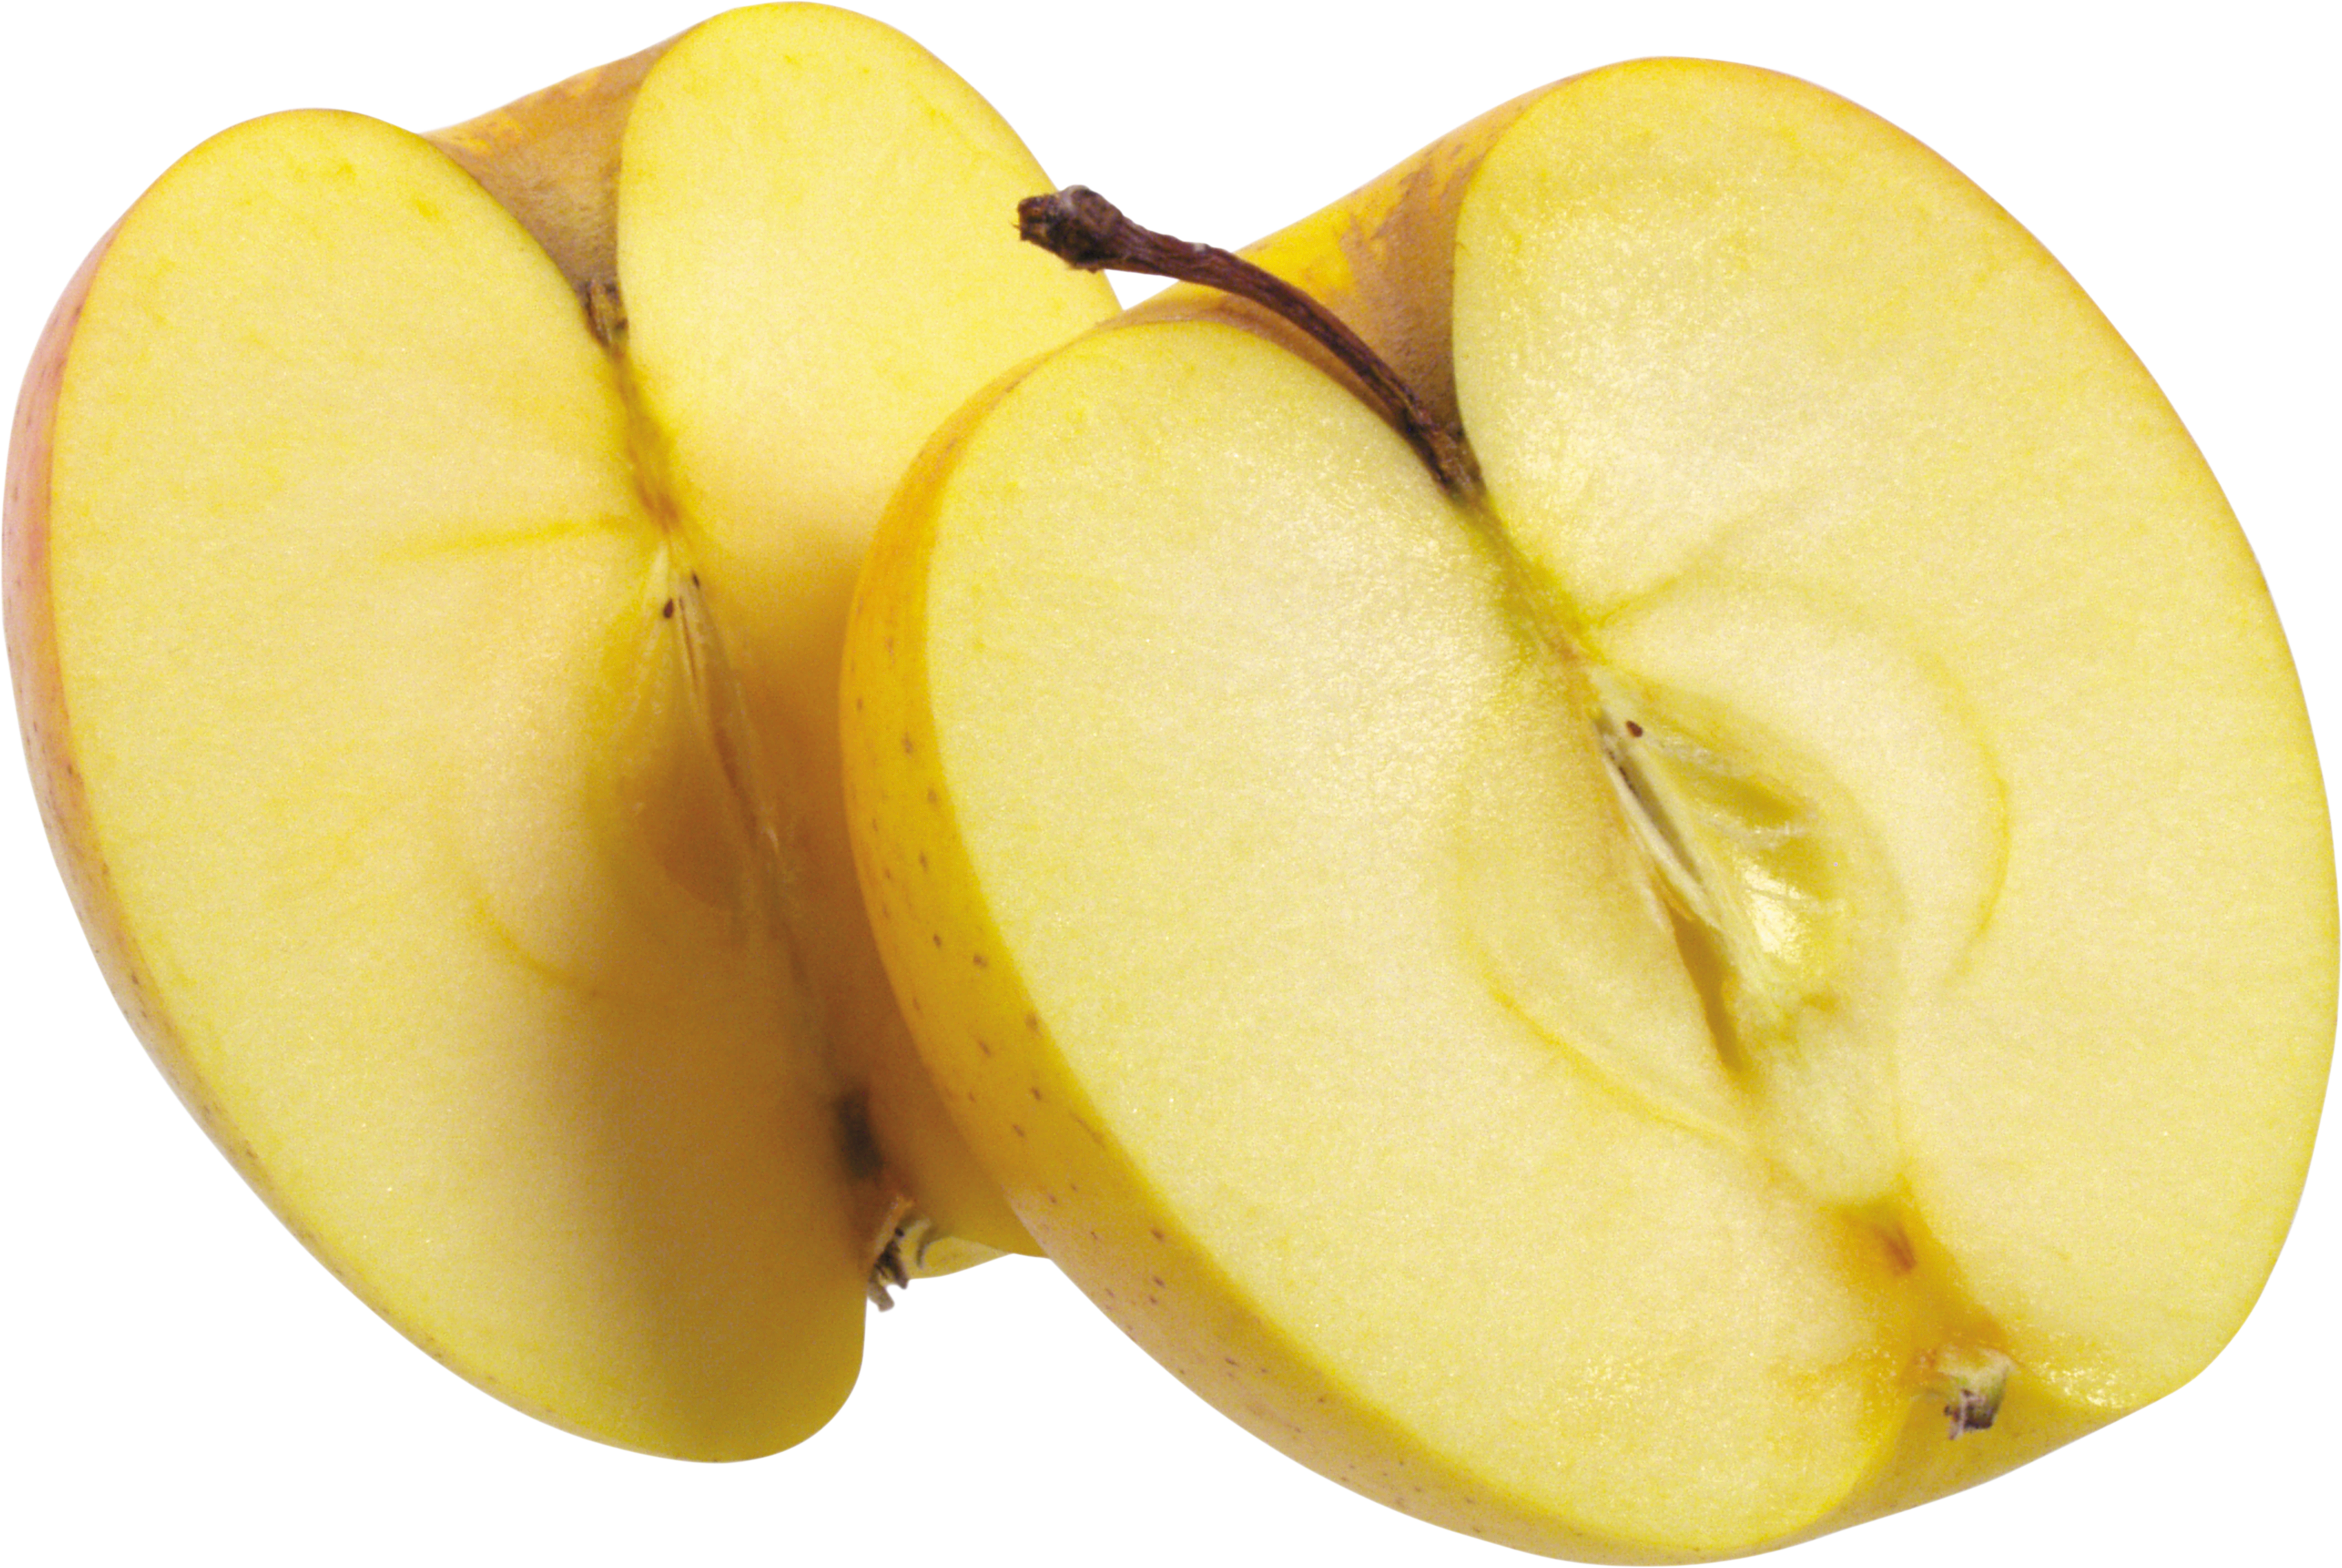 Apple in half clipart picture freeuse library Yellow Apple Cut in half PNG Image - PurePNG | Free transparent CC0 ... picture freeuse library